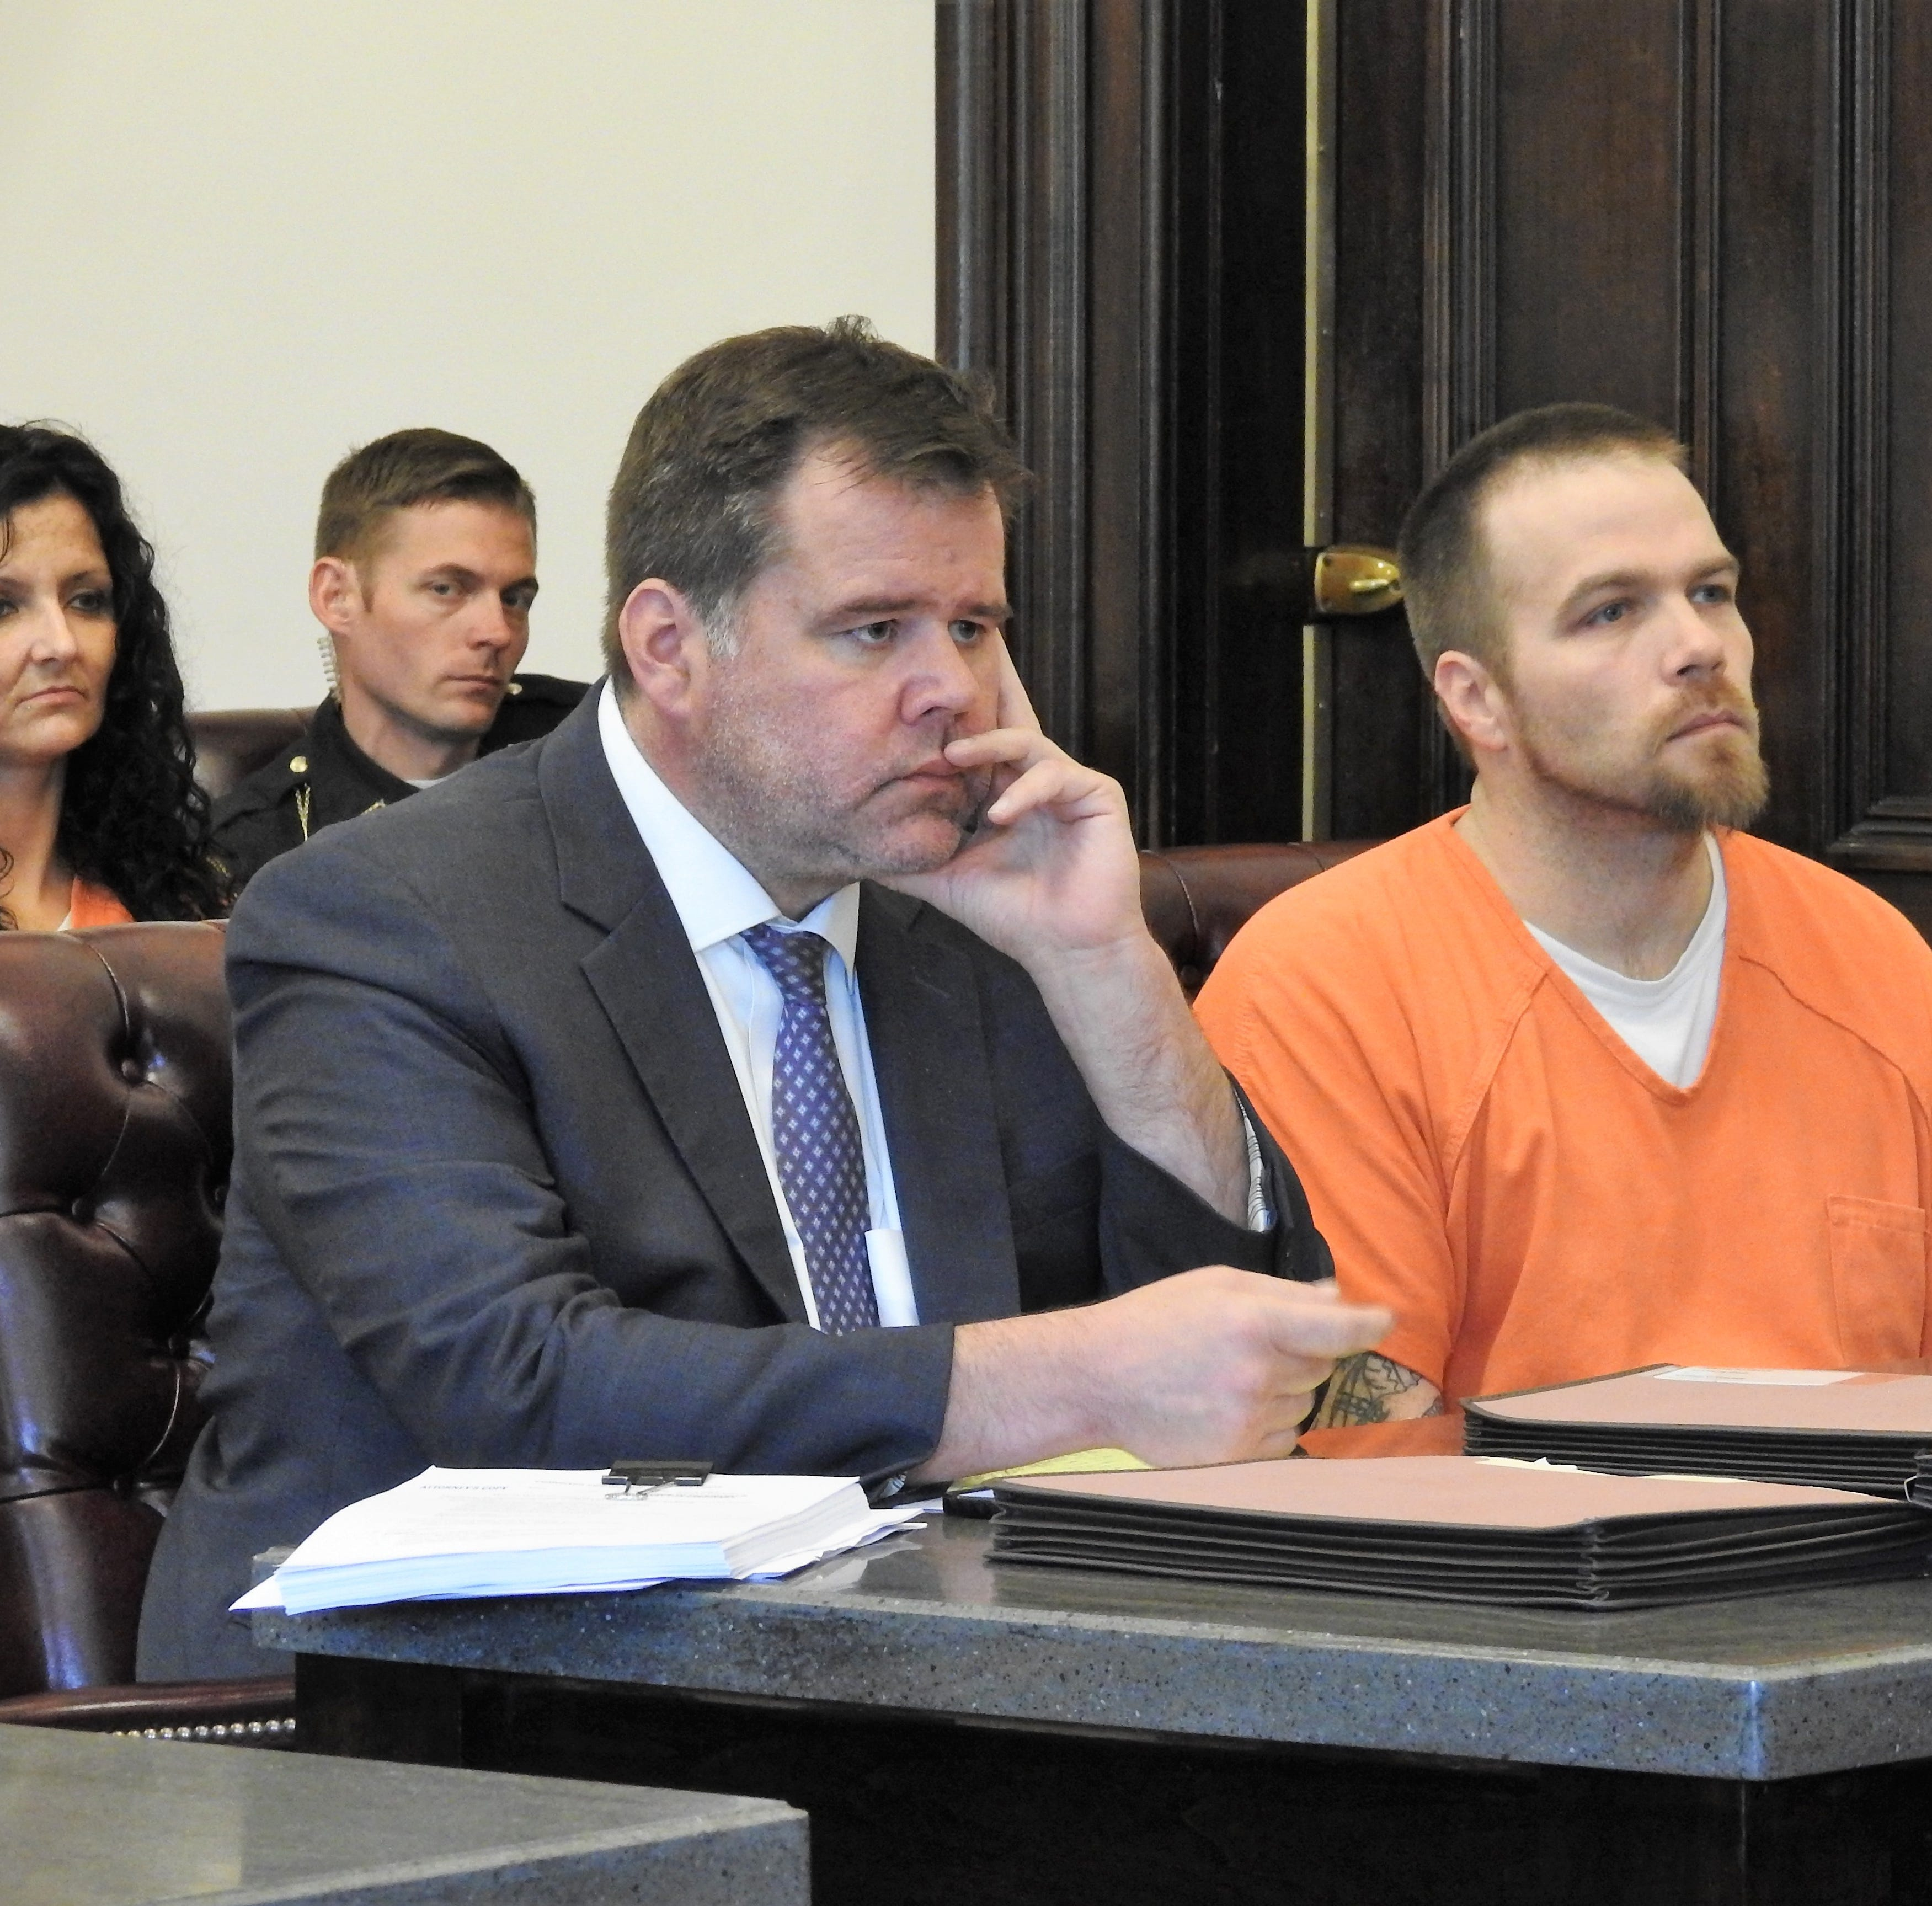 Turner receives four years in prison for burglaries